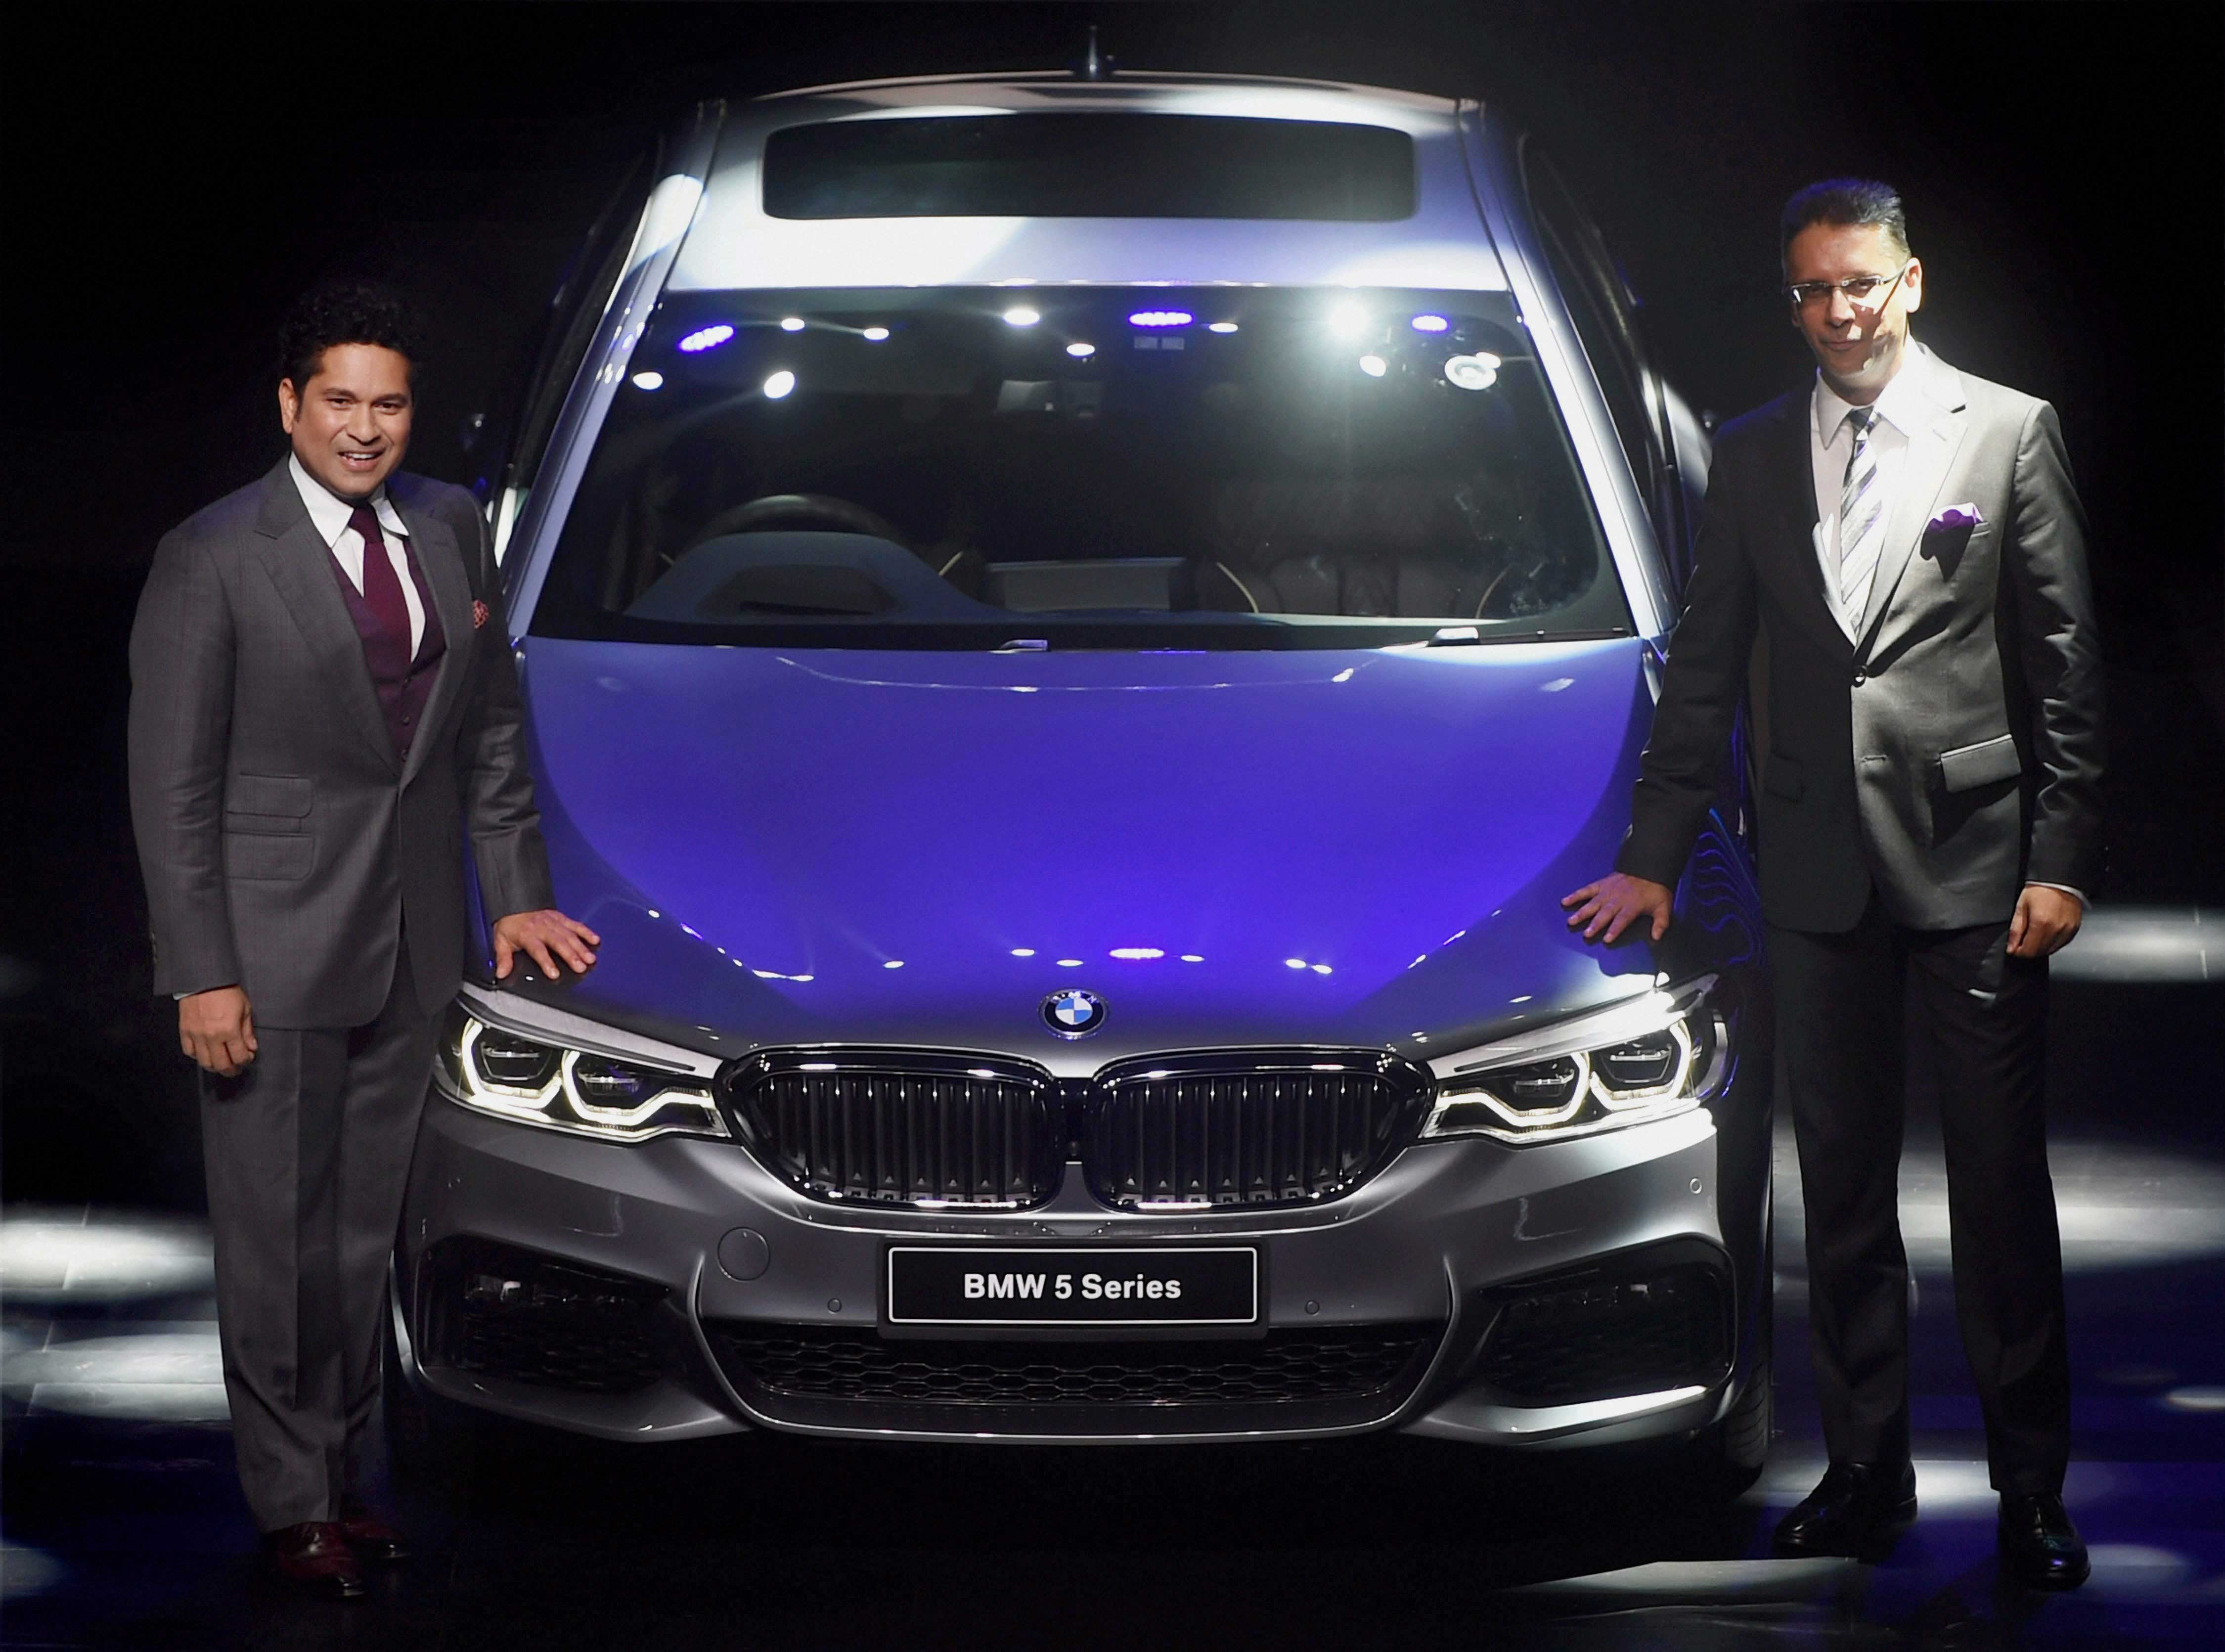 BMW unveils all-new 5 Series range in India